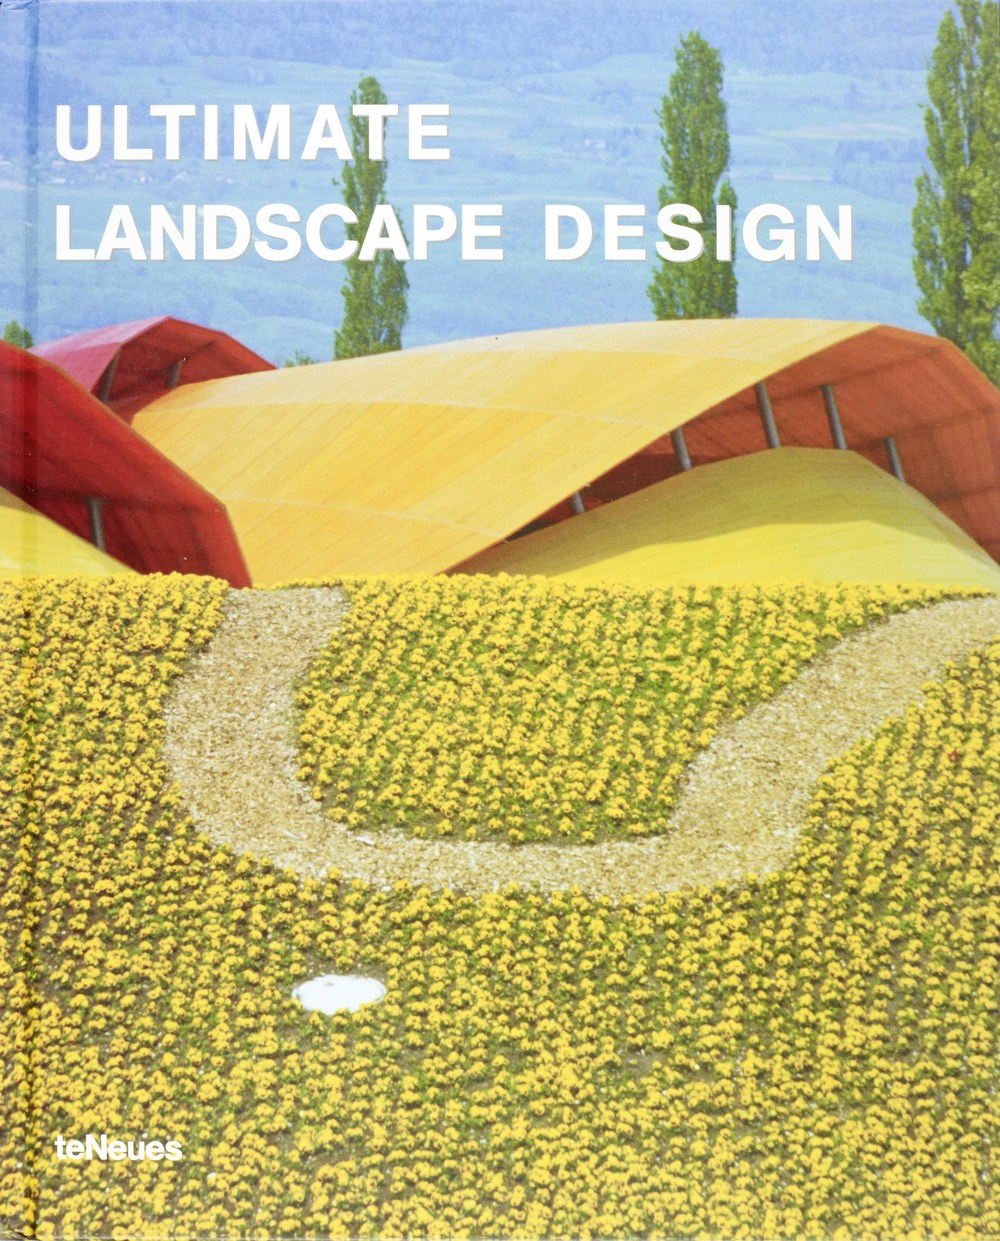 2006_ultimate landscape design.jpg